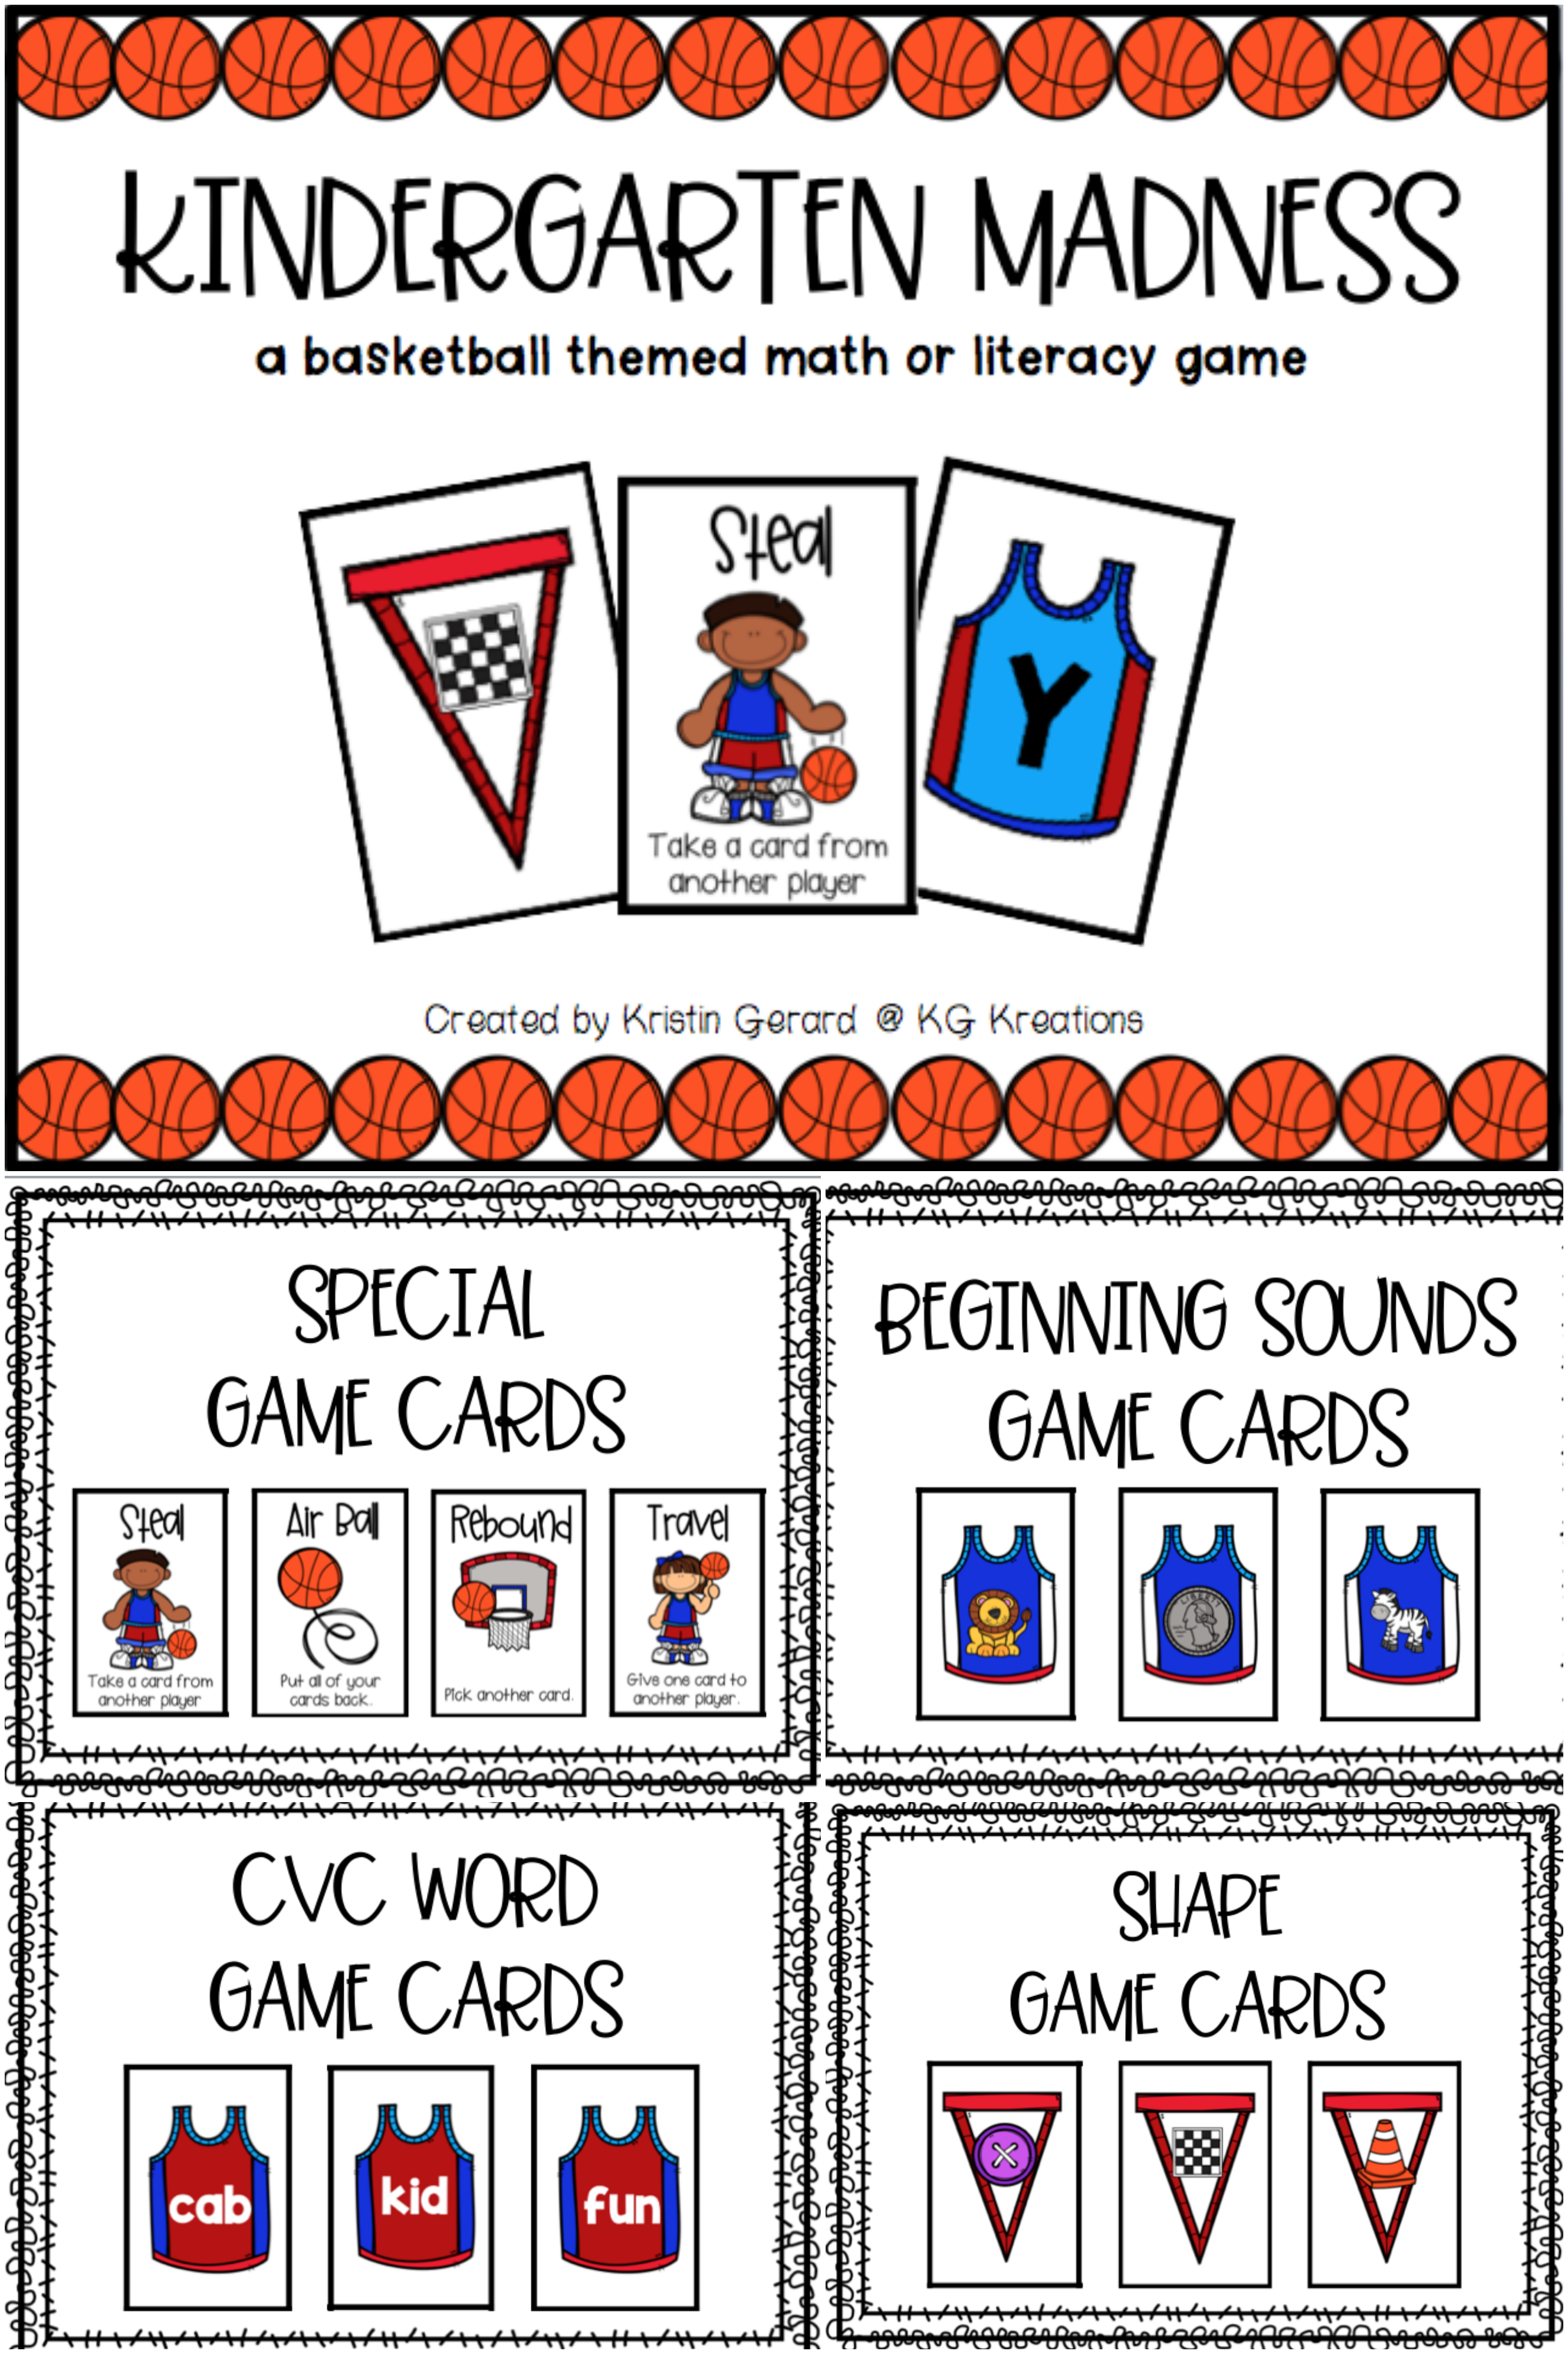 Reading Games For Kindergarten: March Madness | Tpt Resources